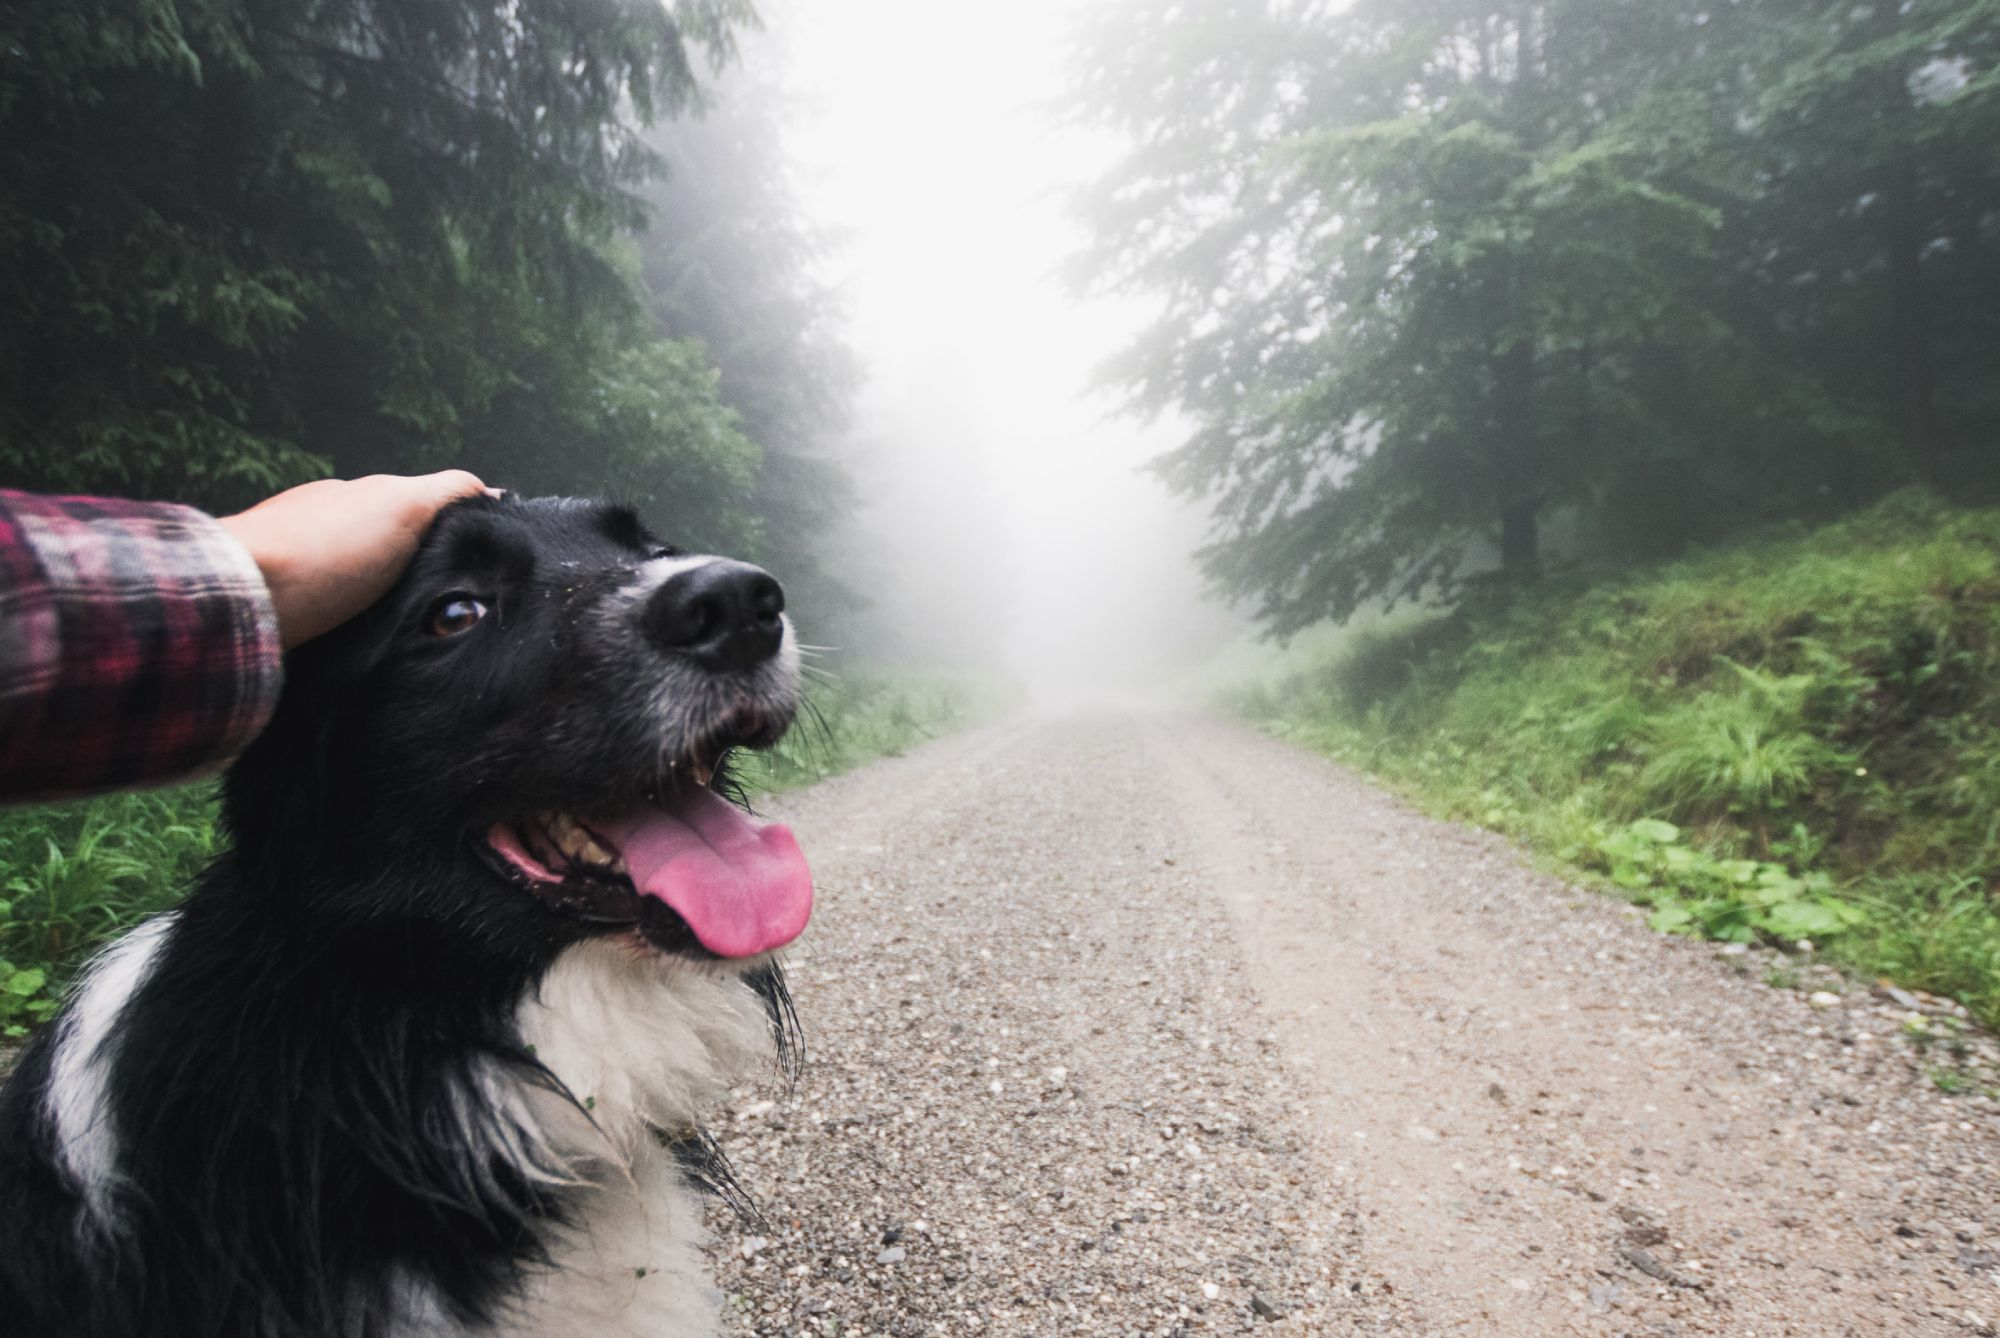 A misty morning walk will keep your dog cool.